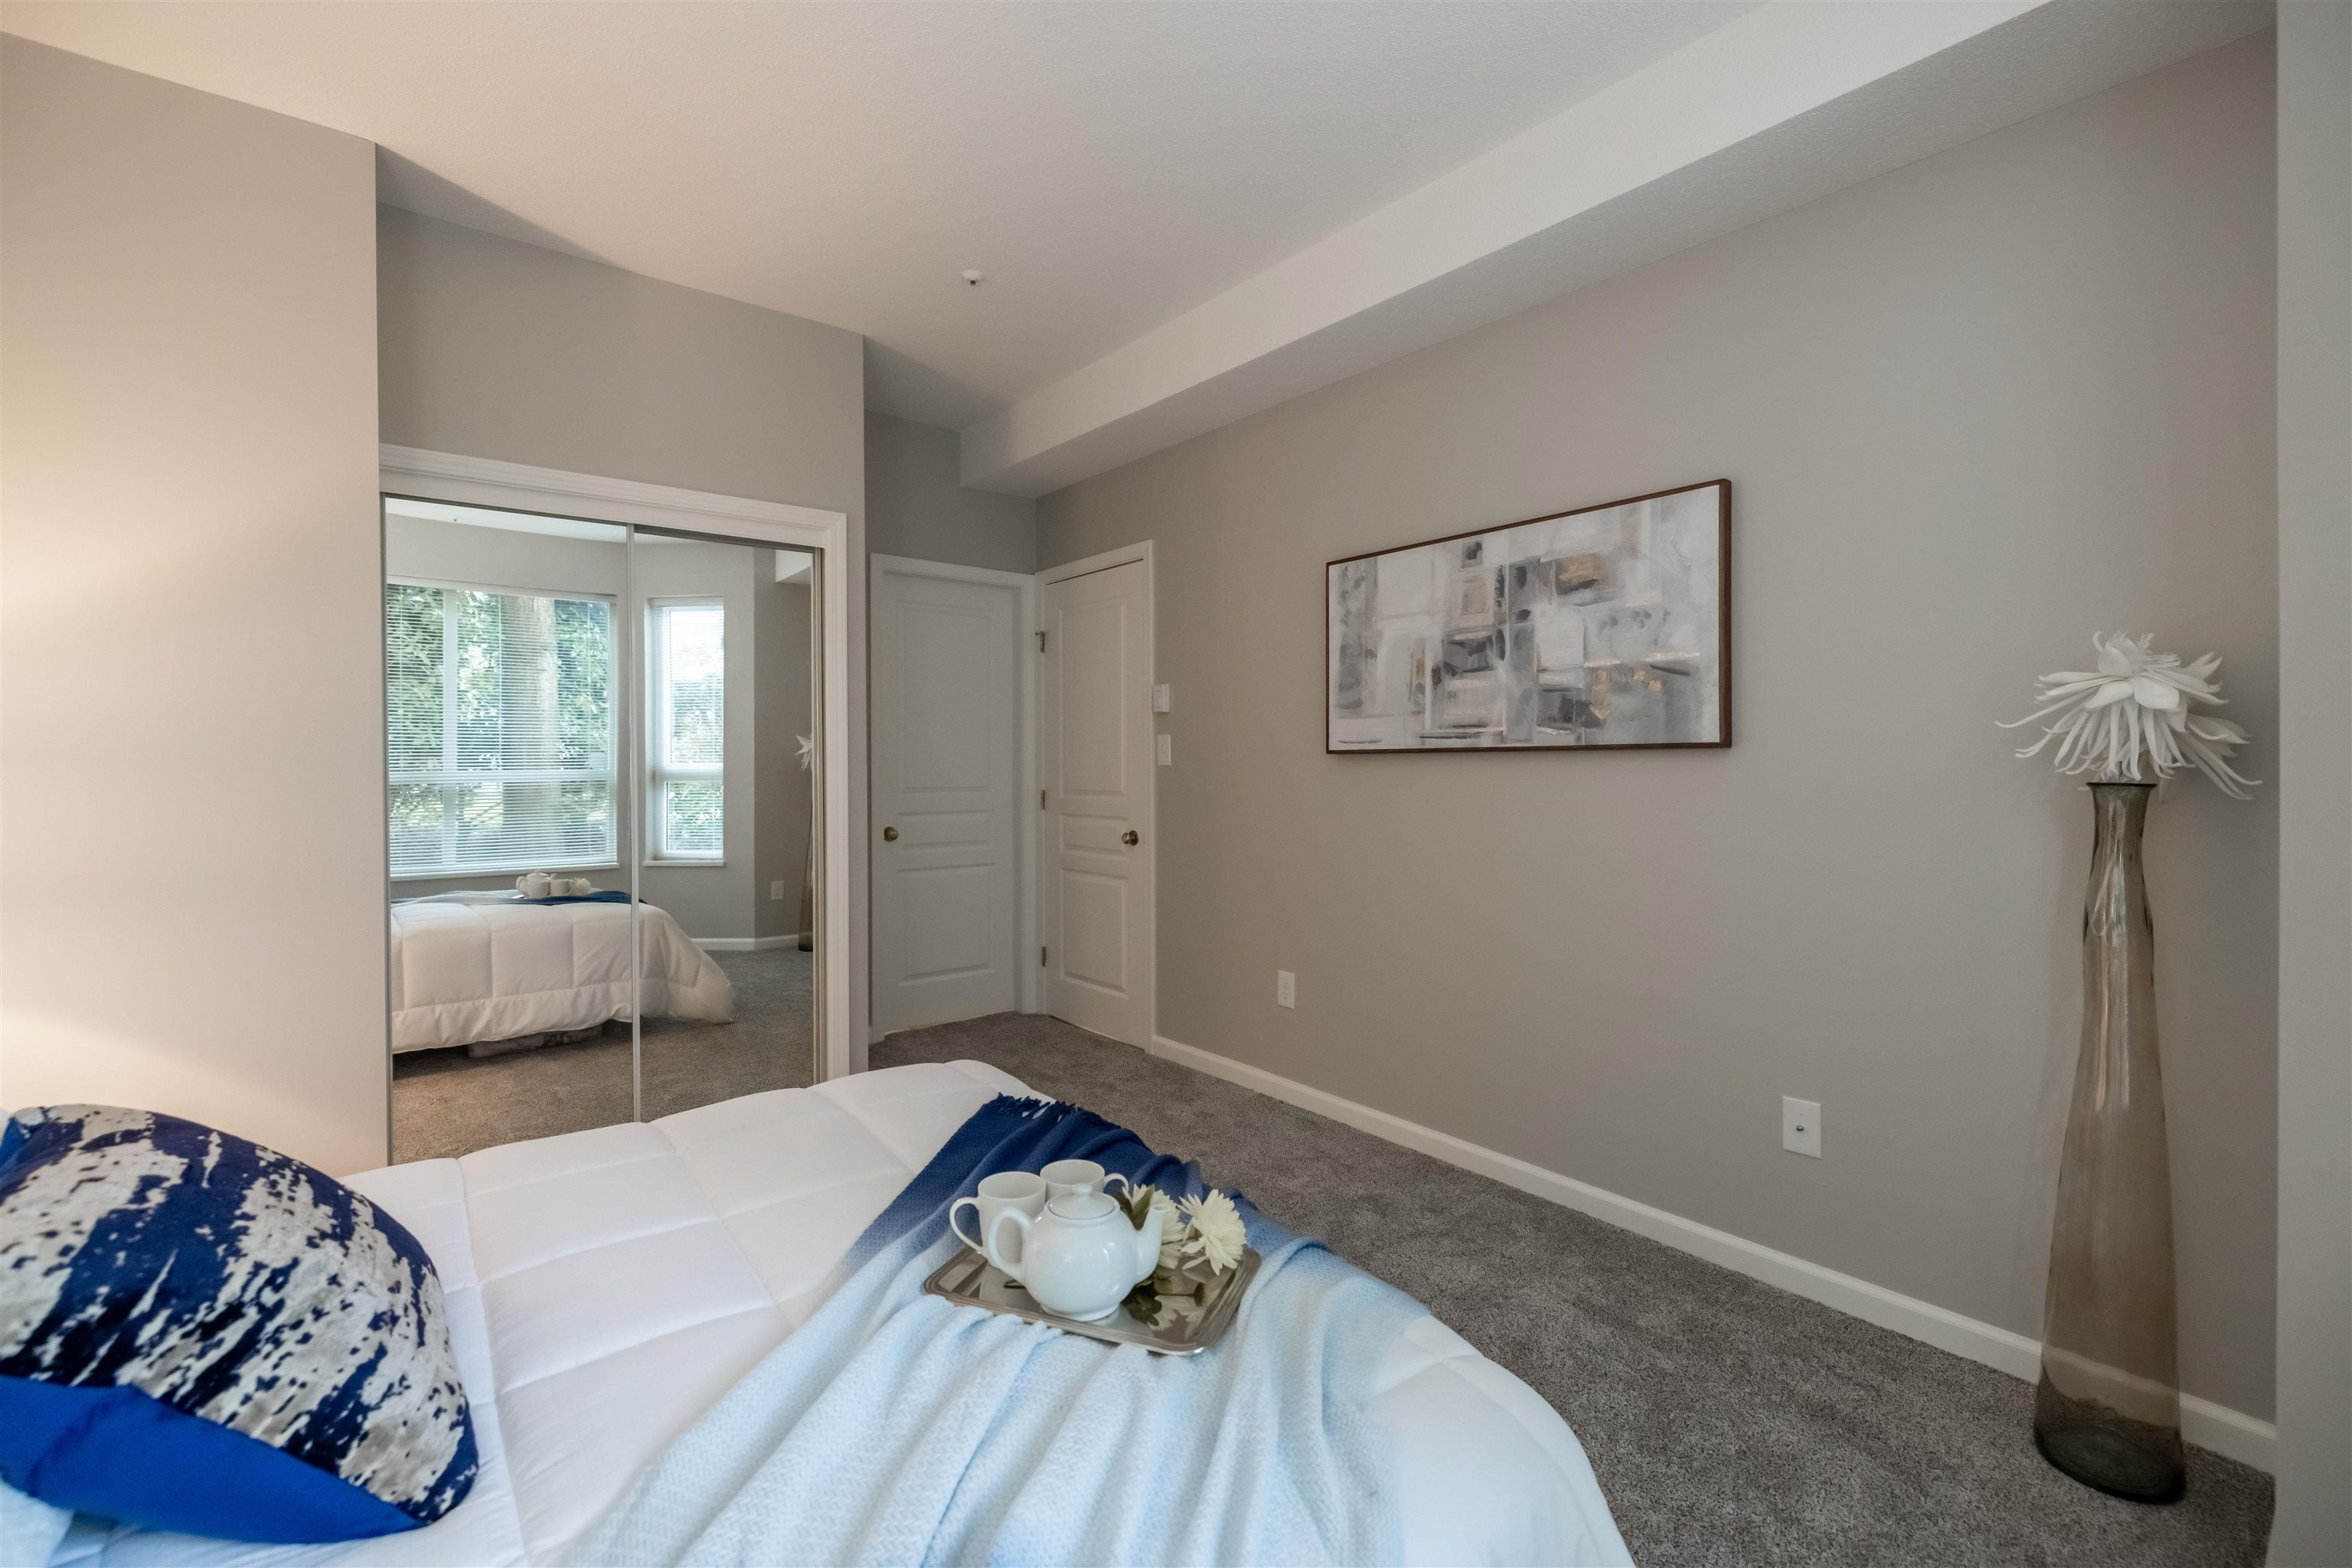 105 8139 121A STREET - Queen Mary Park Surrey Apartment/Condo for sale, 2 Bedrooms (R2623168) - #12